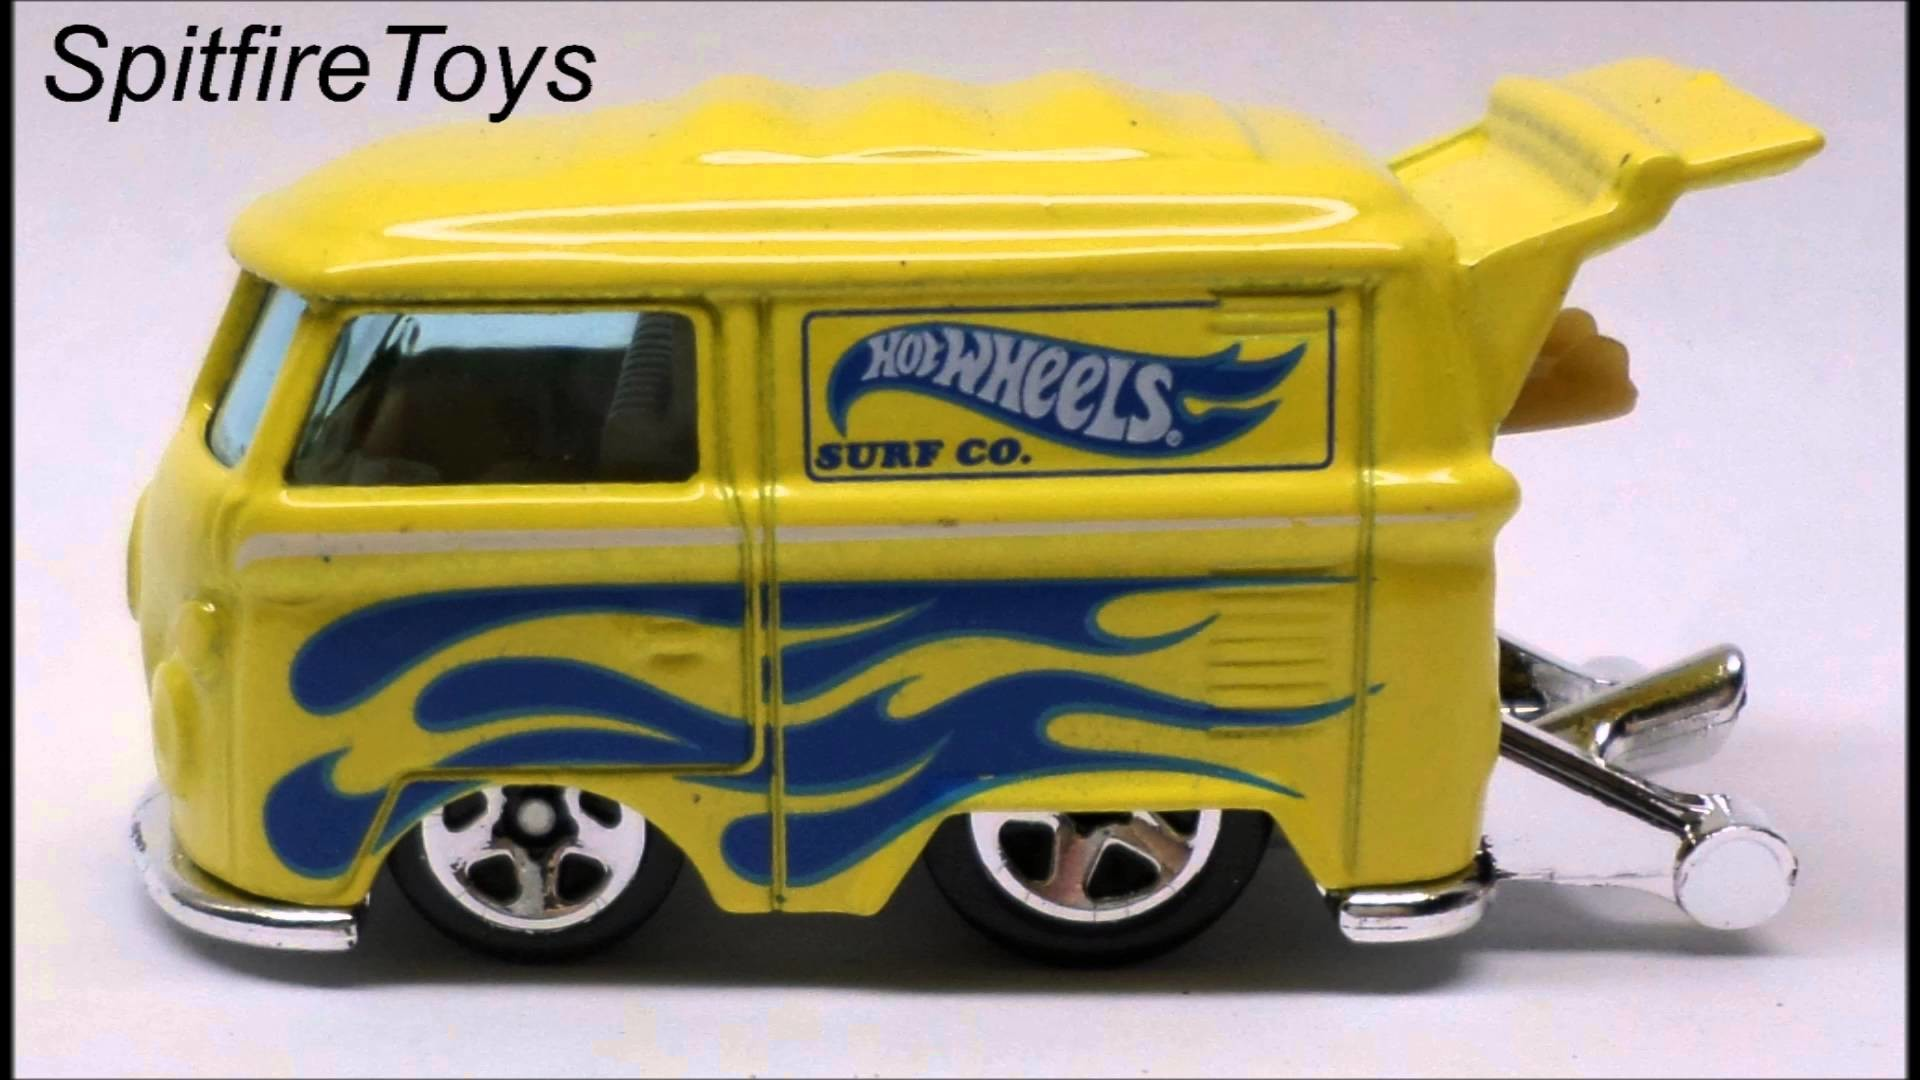 1920x1080 2016 Hot Wheels VW 5 Pack by Spitfire Toys